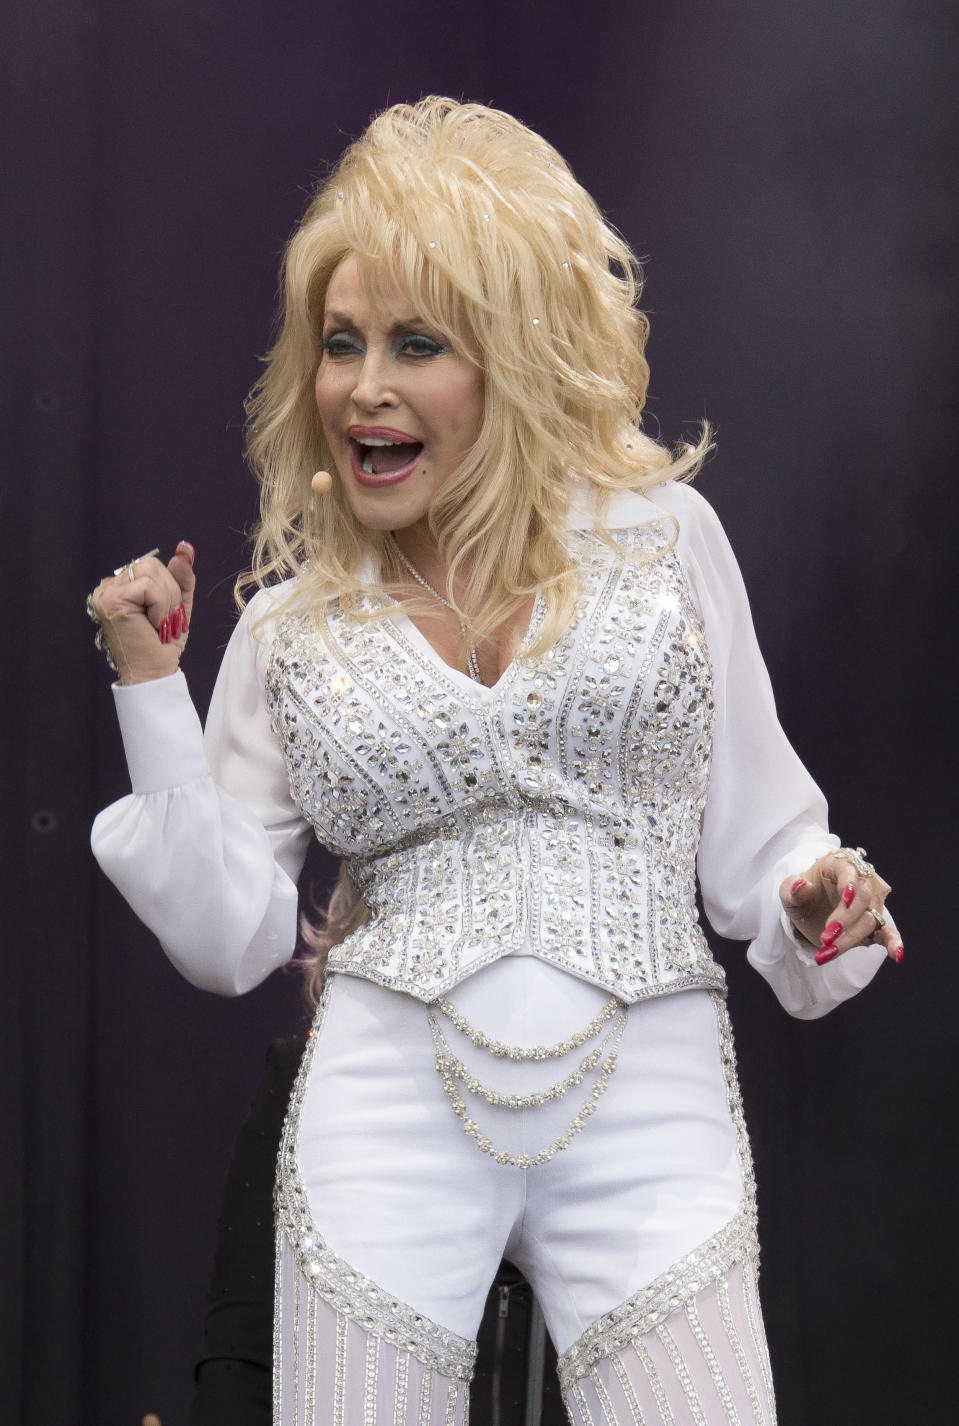 FILE - Dolly Parton performs on the main Pyramid stage at Glastonbury music festival, England on June 29, 2014.It's been 51 years since Dolly Parton earned her first Grammy nomination, and this year the national treasure who has won nine Grammys throughout her career is competing for her 50th honor. (Photo by Joel Ryan/Invision/AP, File)